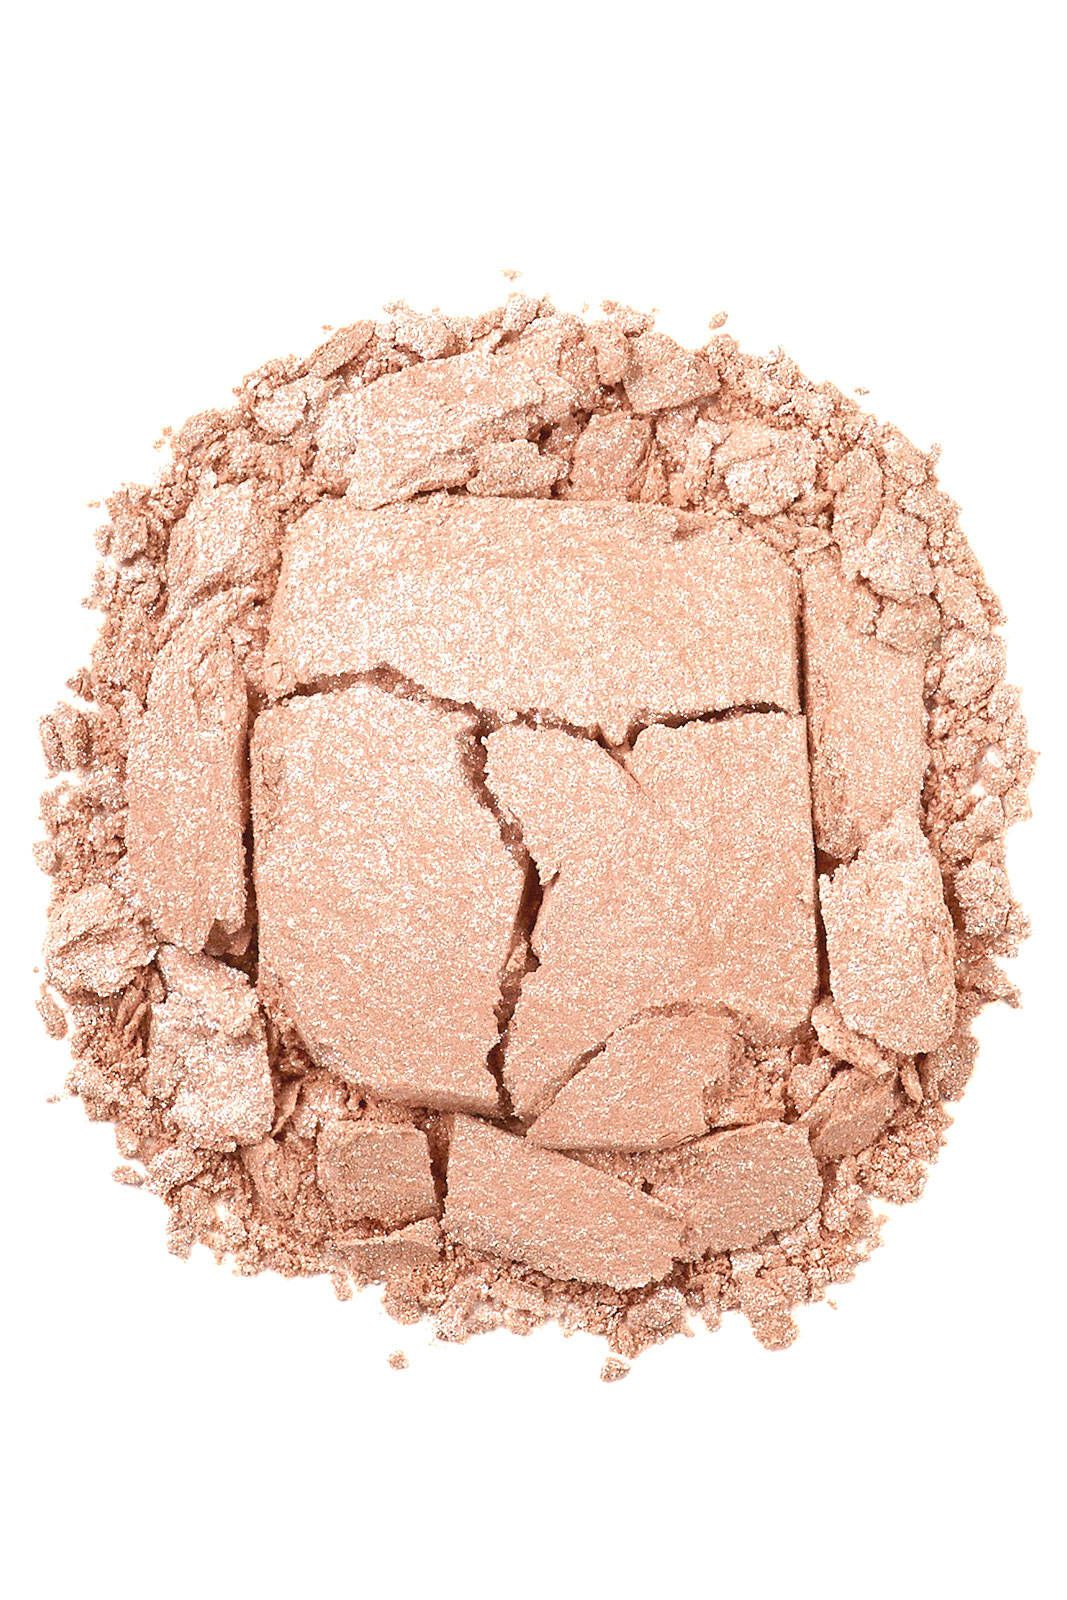 Give bare skin—shoulders, collarbones and the length of legs—a hint of sexy shimmer with Urban Decay Naked Illuminated Shimmering Powder for Face and Body, $29, urbandecay.com.   - HarpersBAZAAR.com